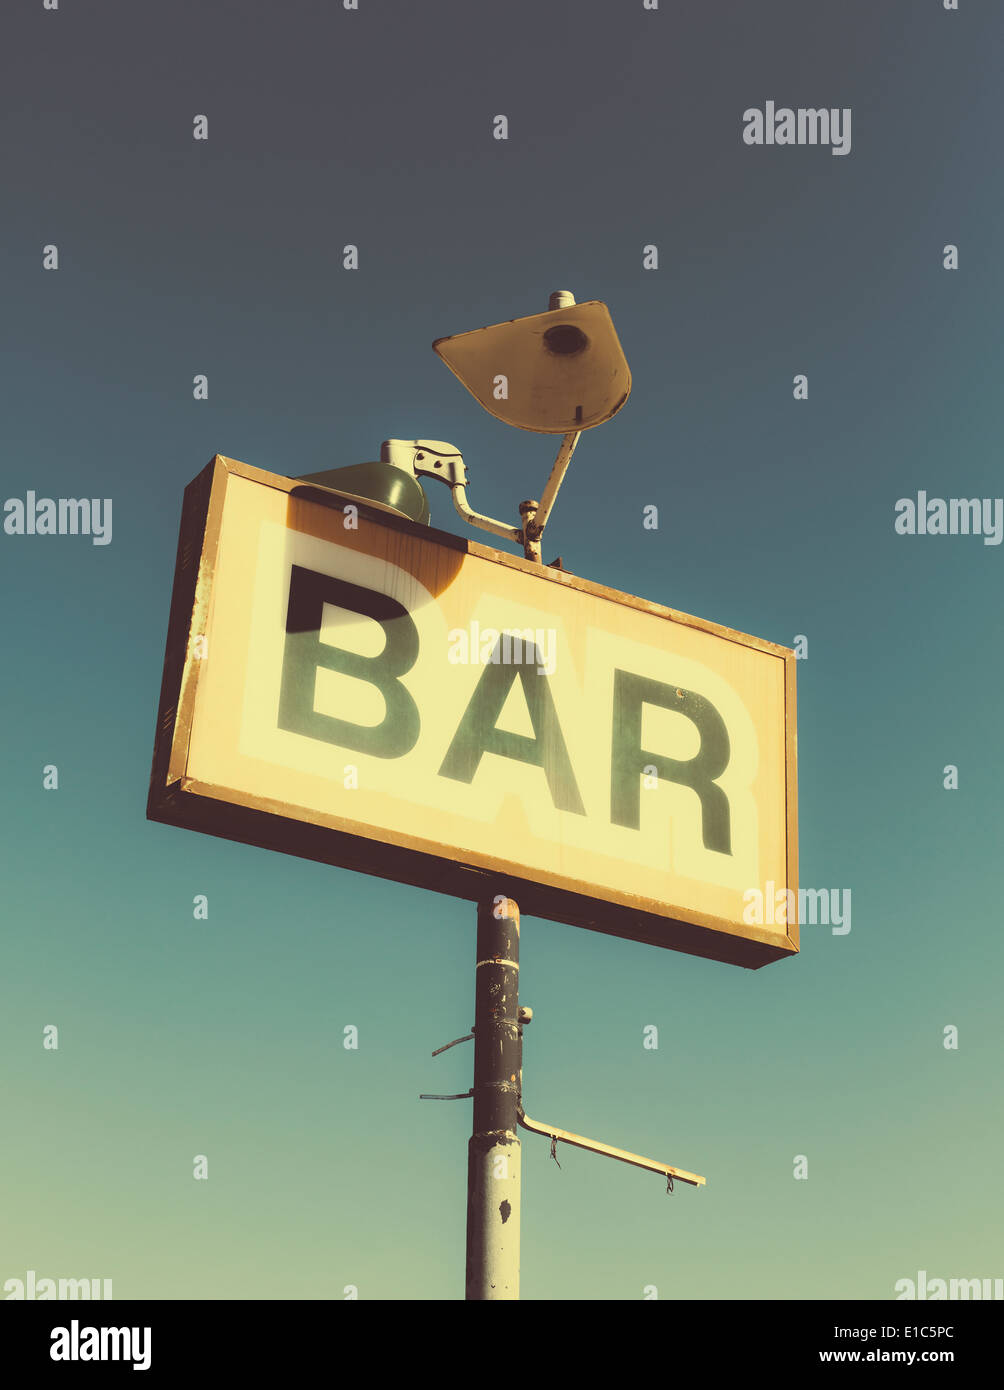 A faded BAR sign on the roadside in Joshua Tree national park. - Stock Image